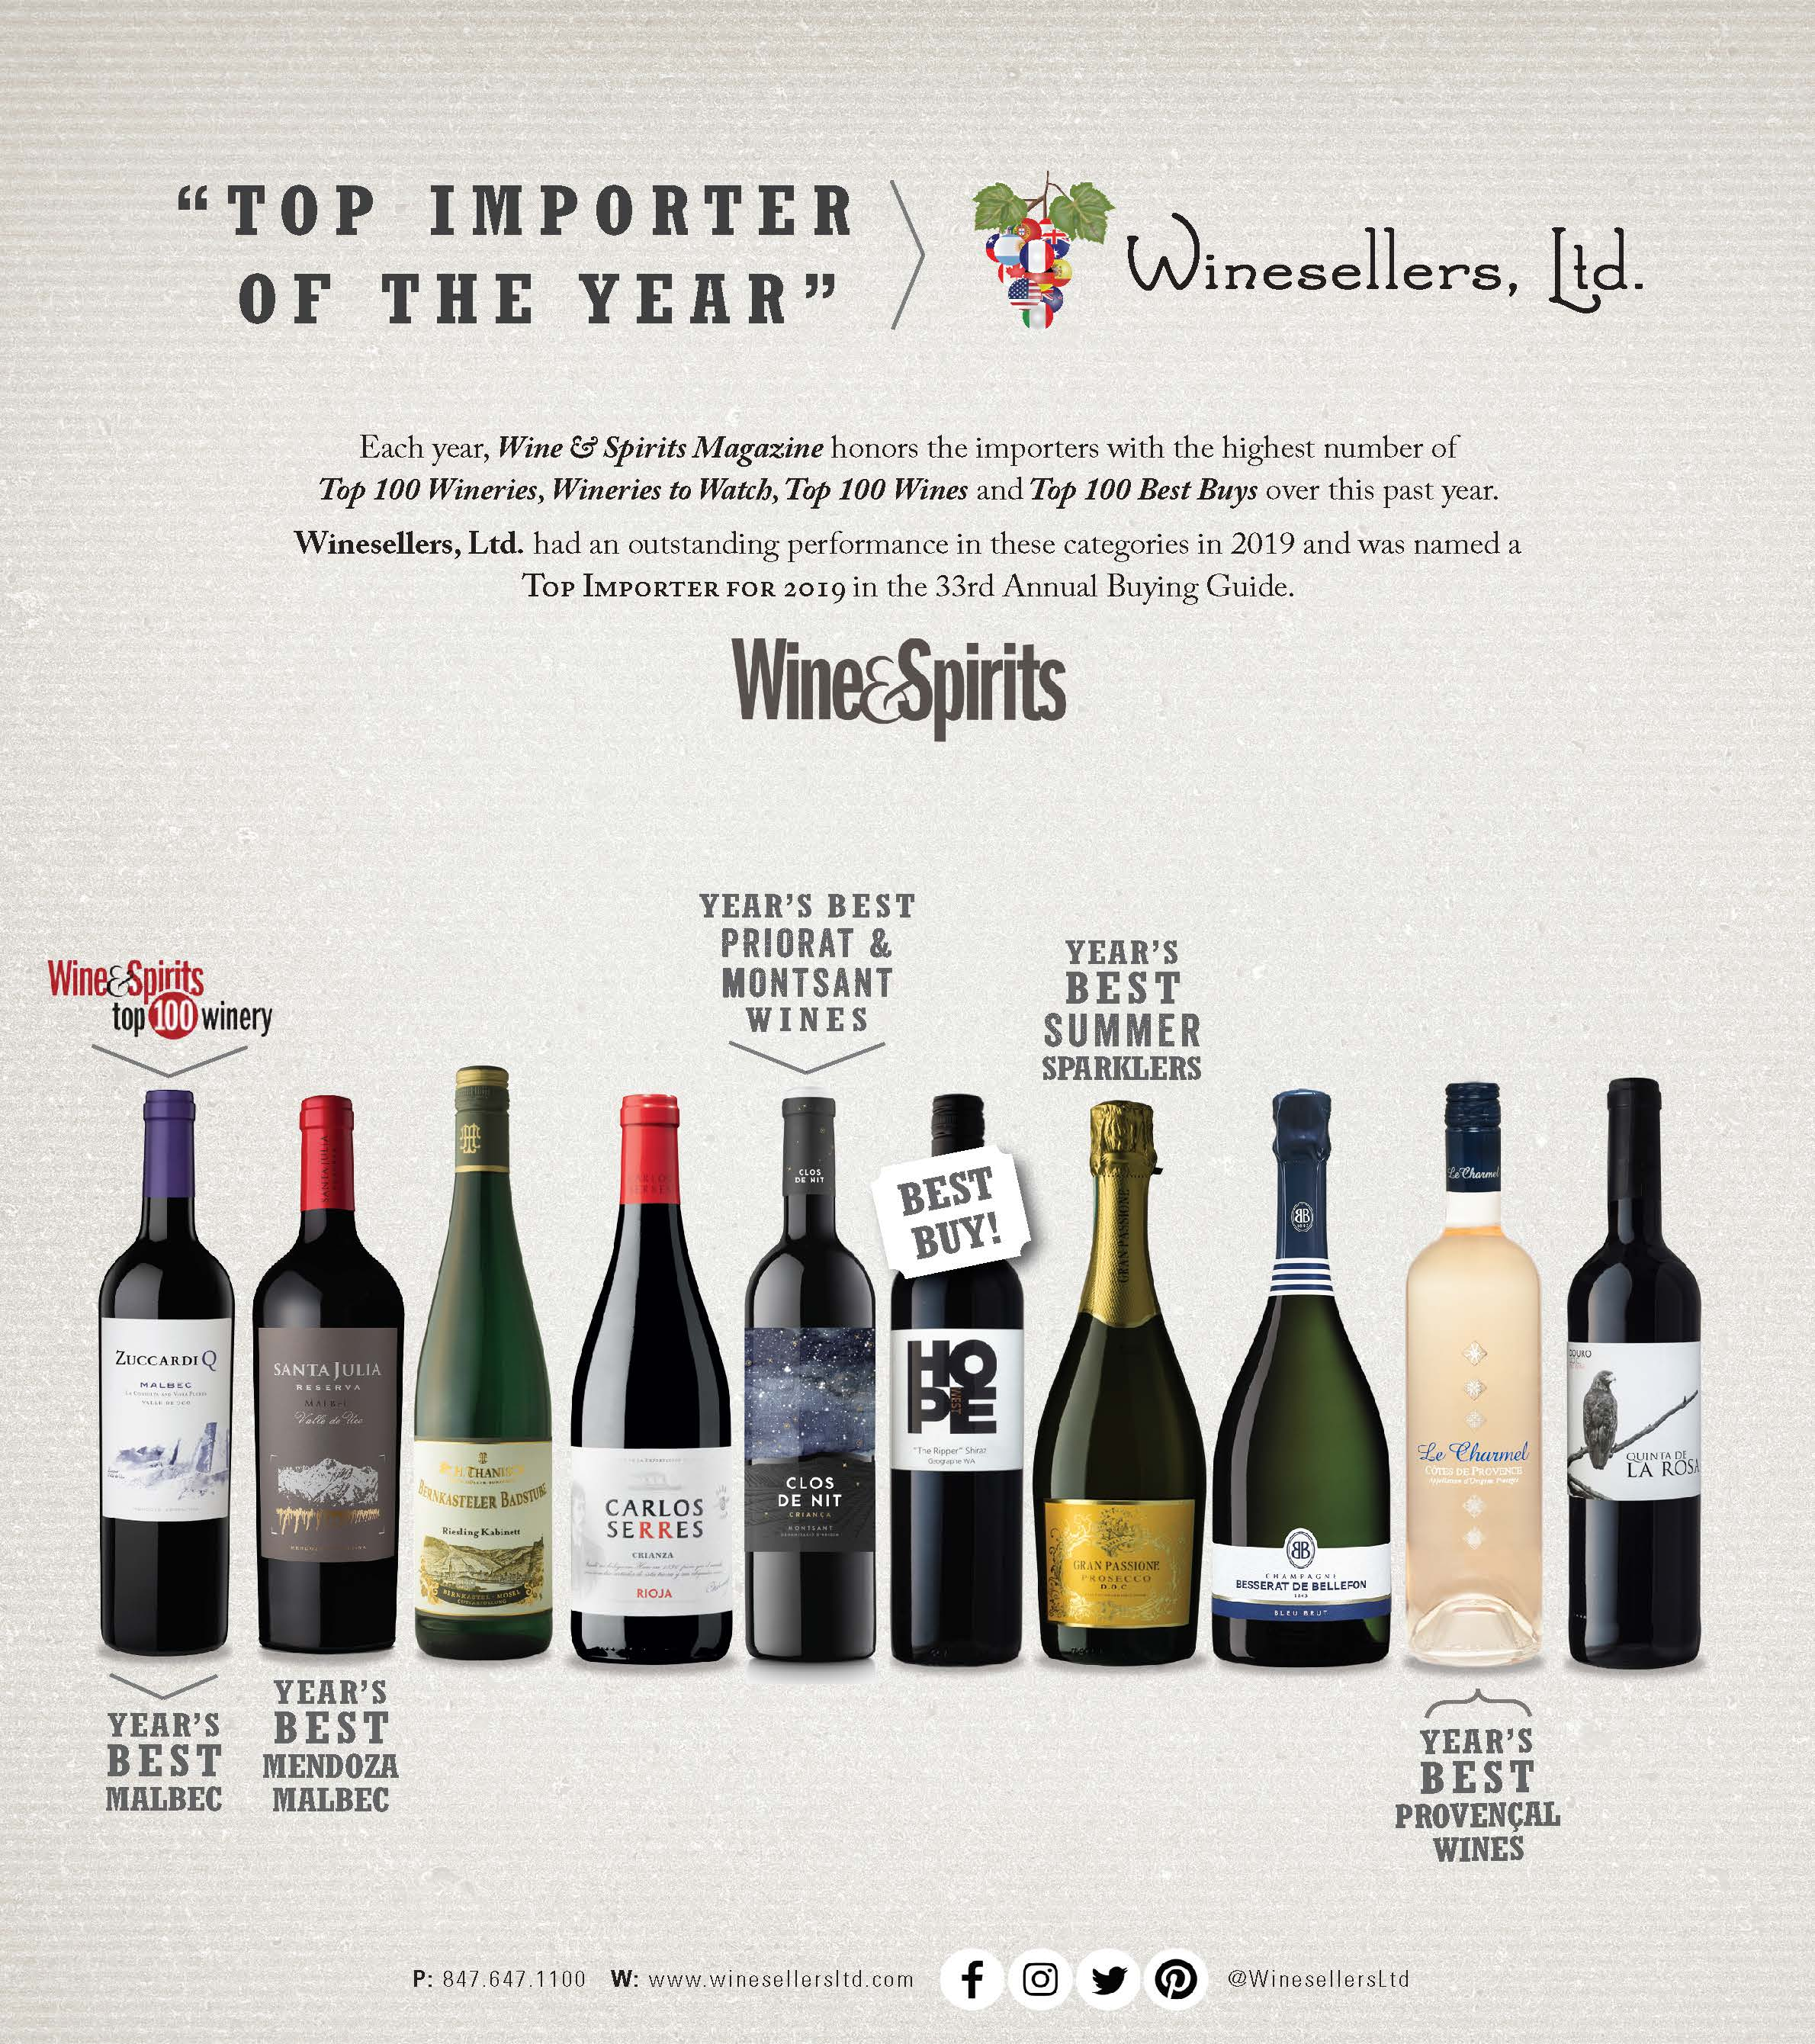 Winesellers, Ltd. named the 'Top Importer of the Year' by Wine & Spirits Magazine